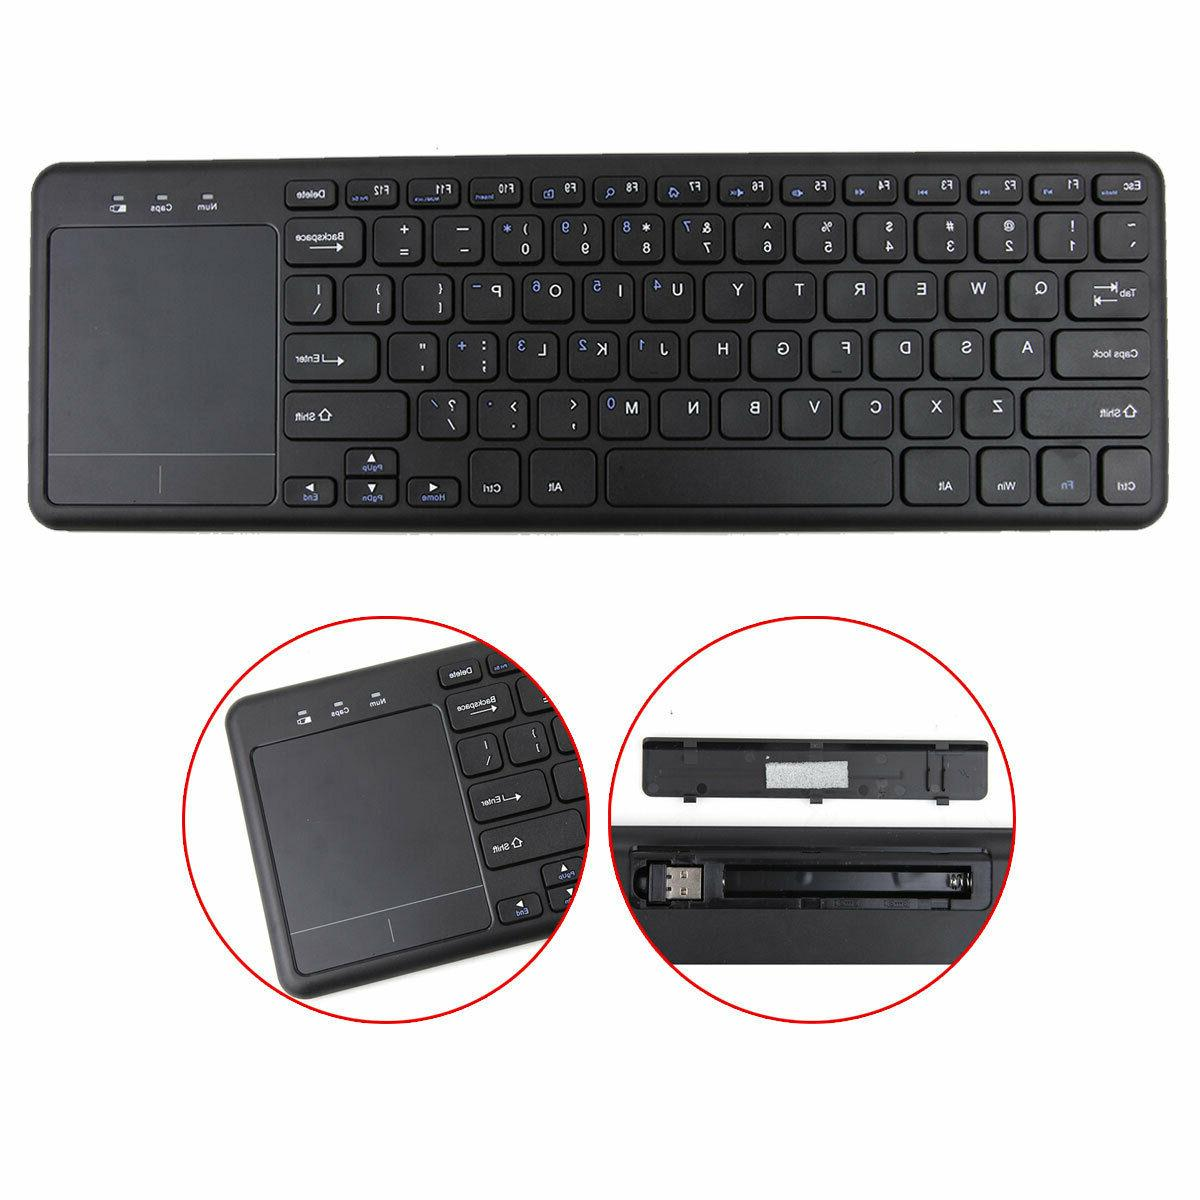 Keyboard wireless 2.4G touchpad Windows 10, Vista, 7, 8